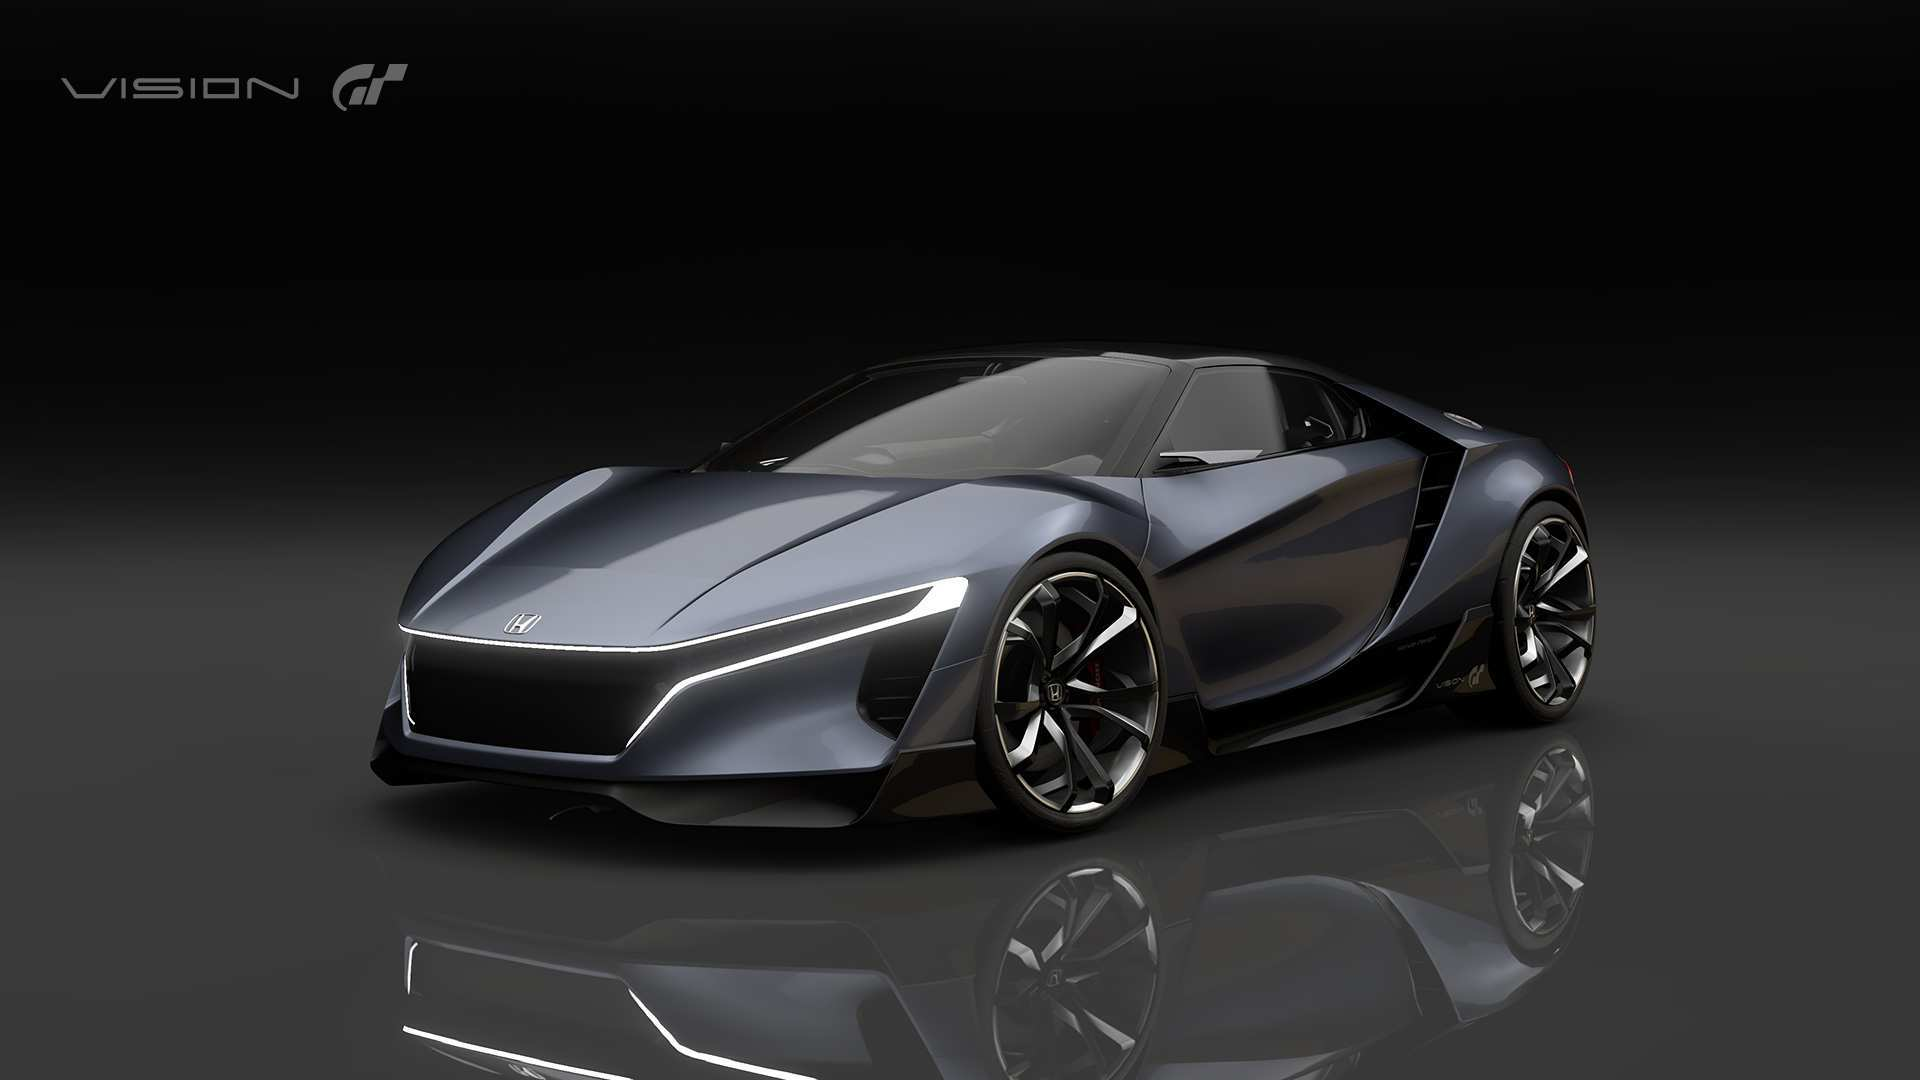 88 The Best Honda Vision 2020 Release